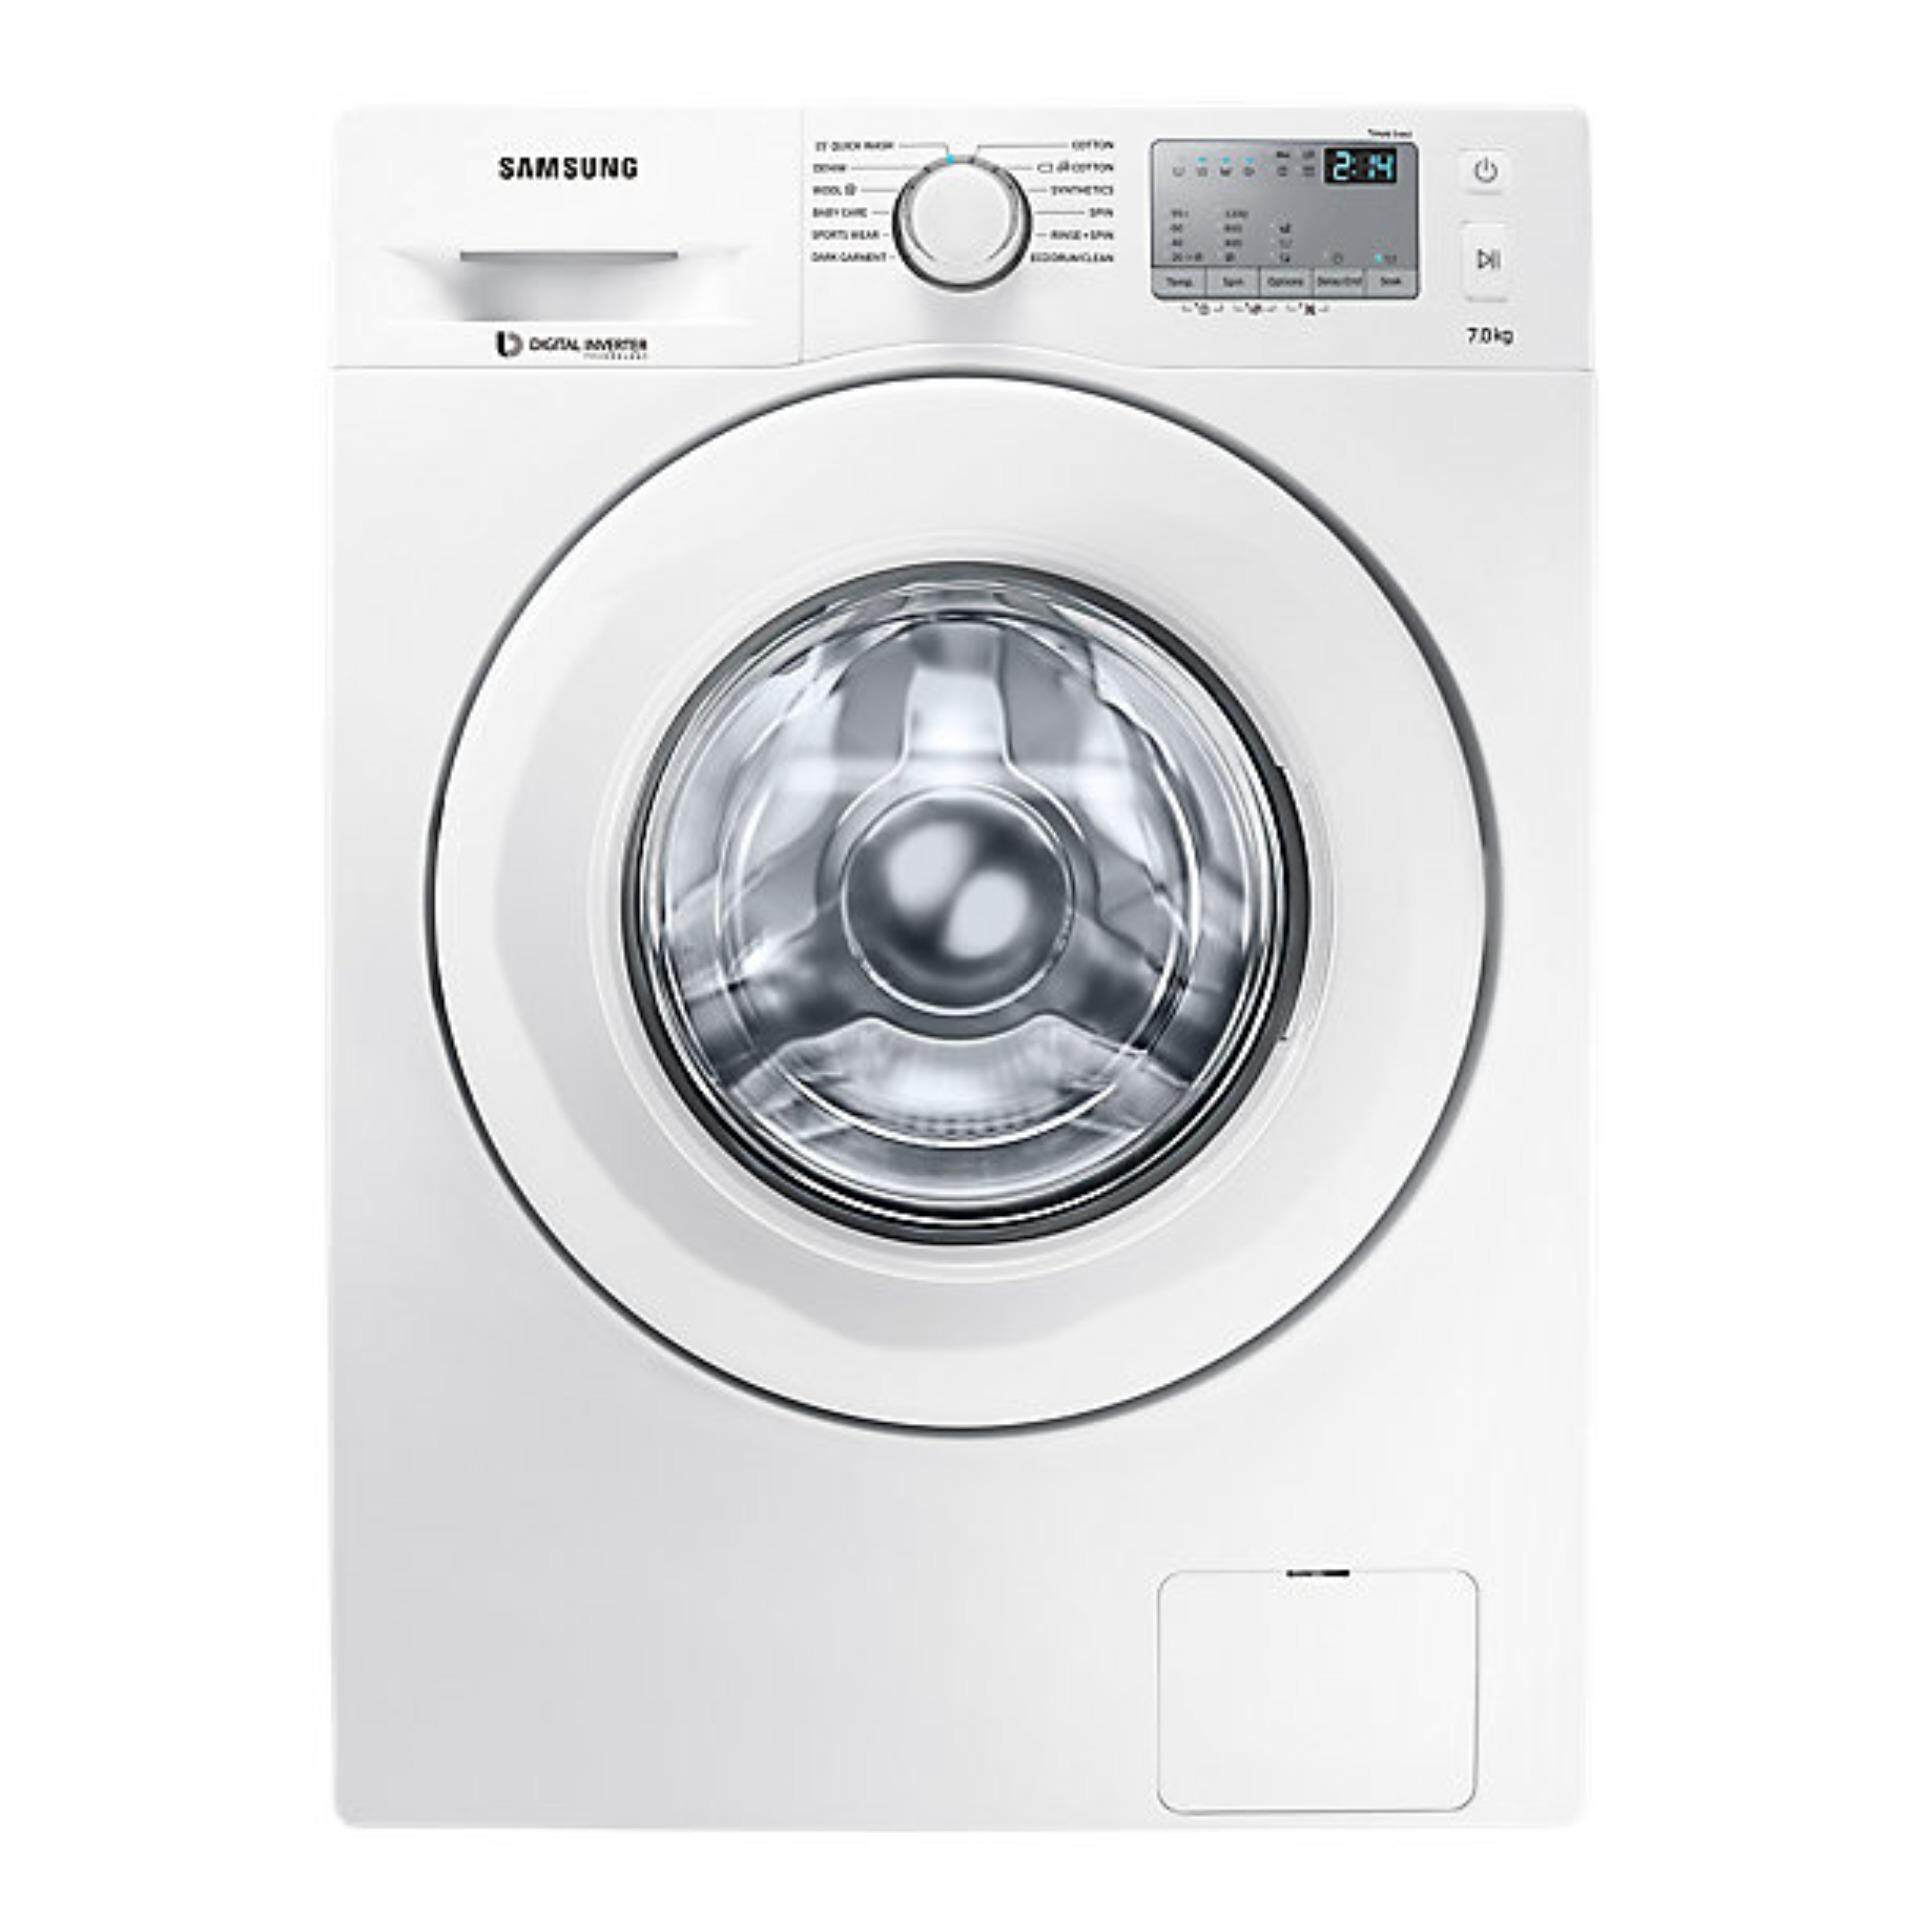 SAMSUNG FRONT LOADING WASHING MACHINE (7KG) WW70J4233KW/FQ